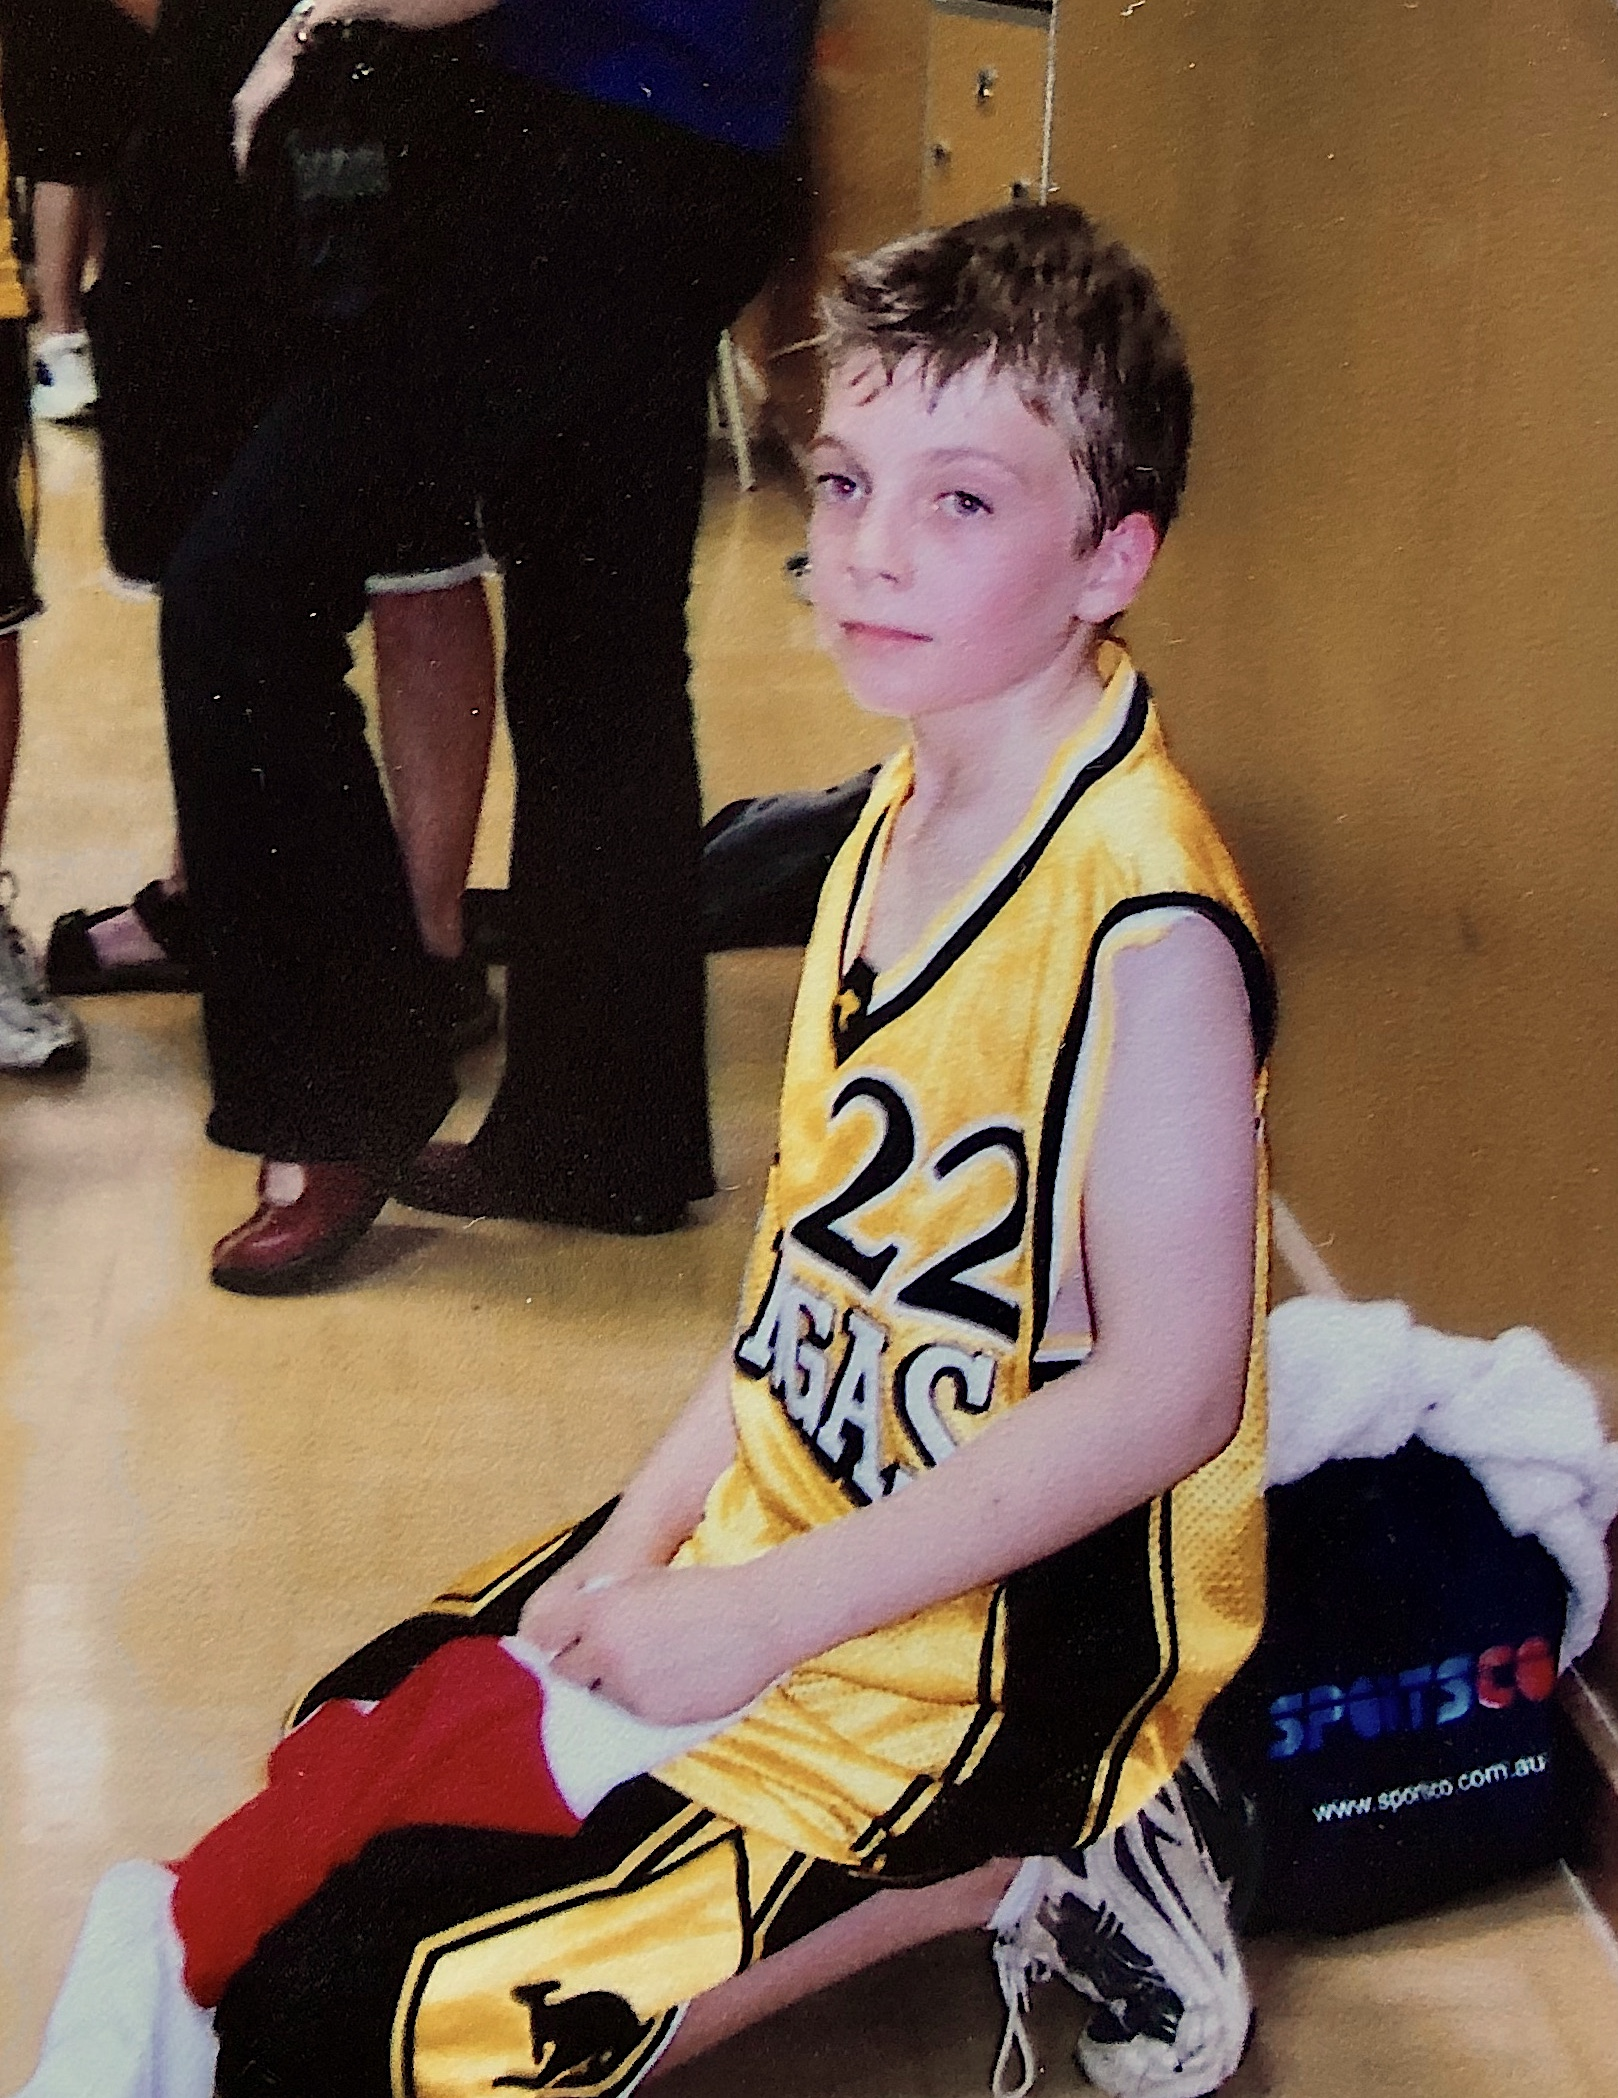 Photo of Andrew (Co-founder of Teammo) in his early days of playing basketball